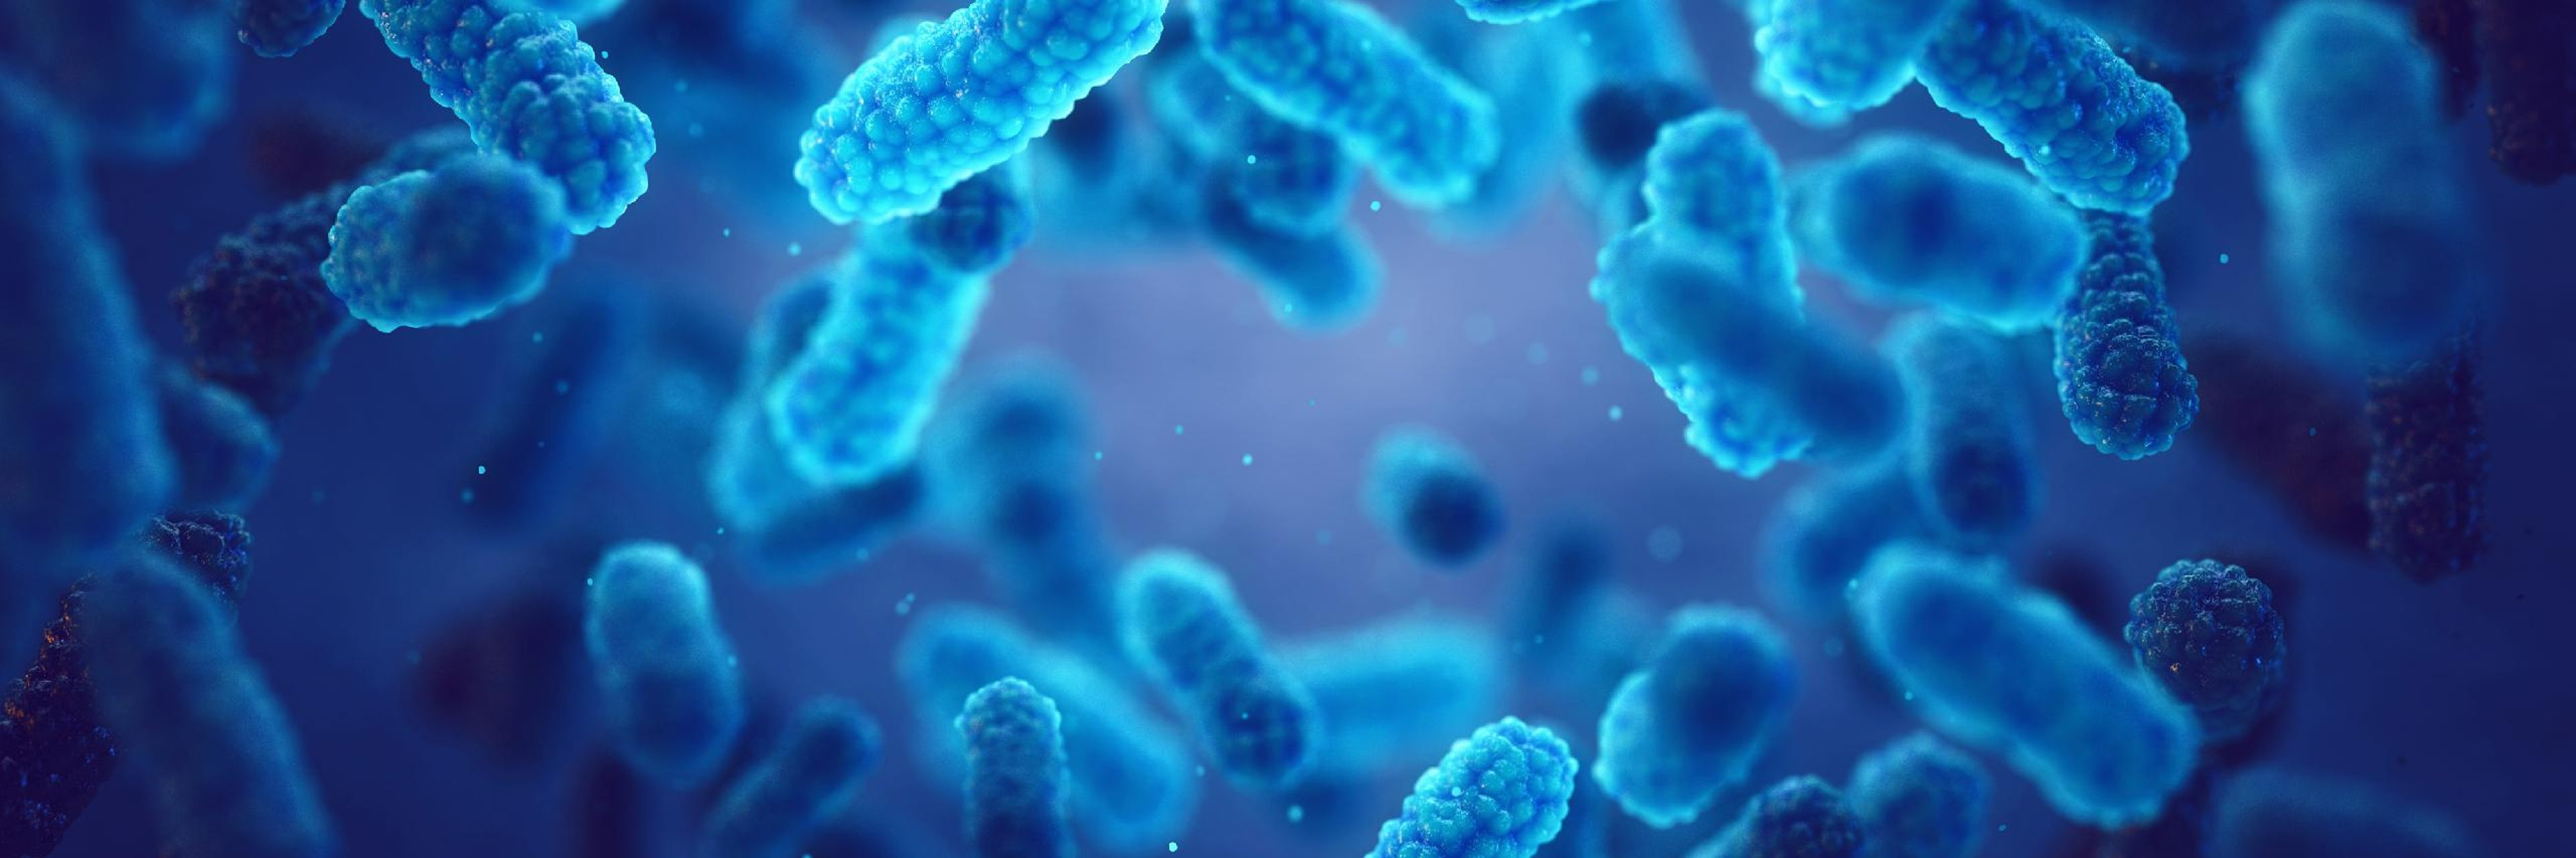 Is Contagion Real? Giving Context to Prophetic Wisdom